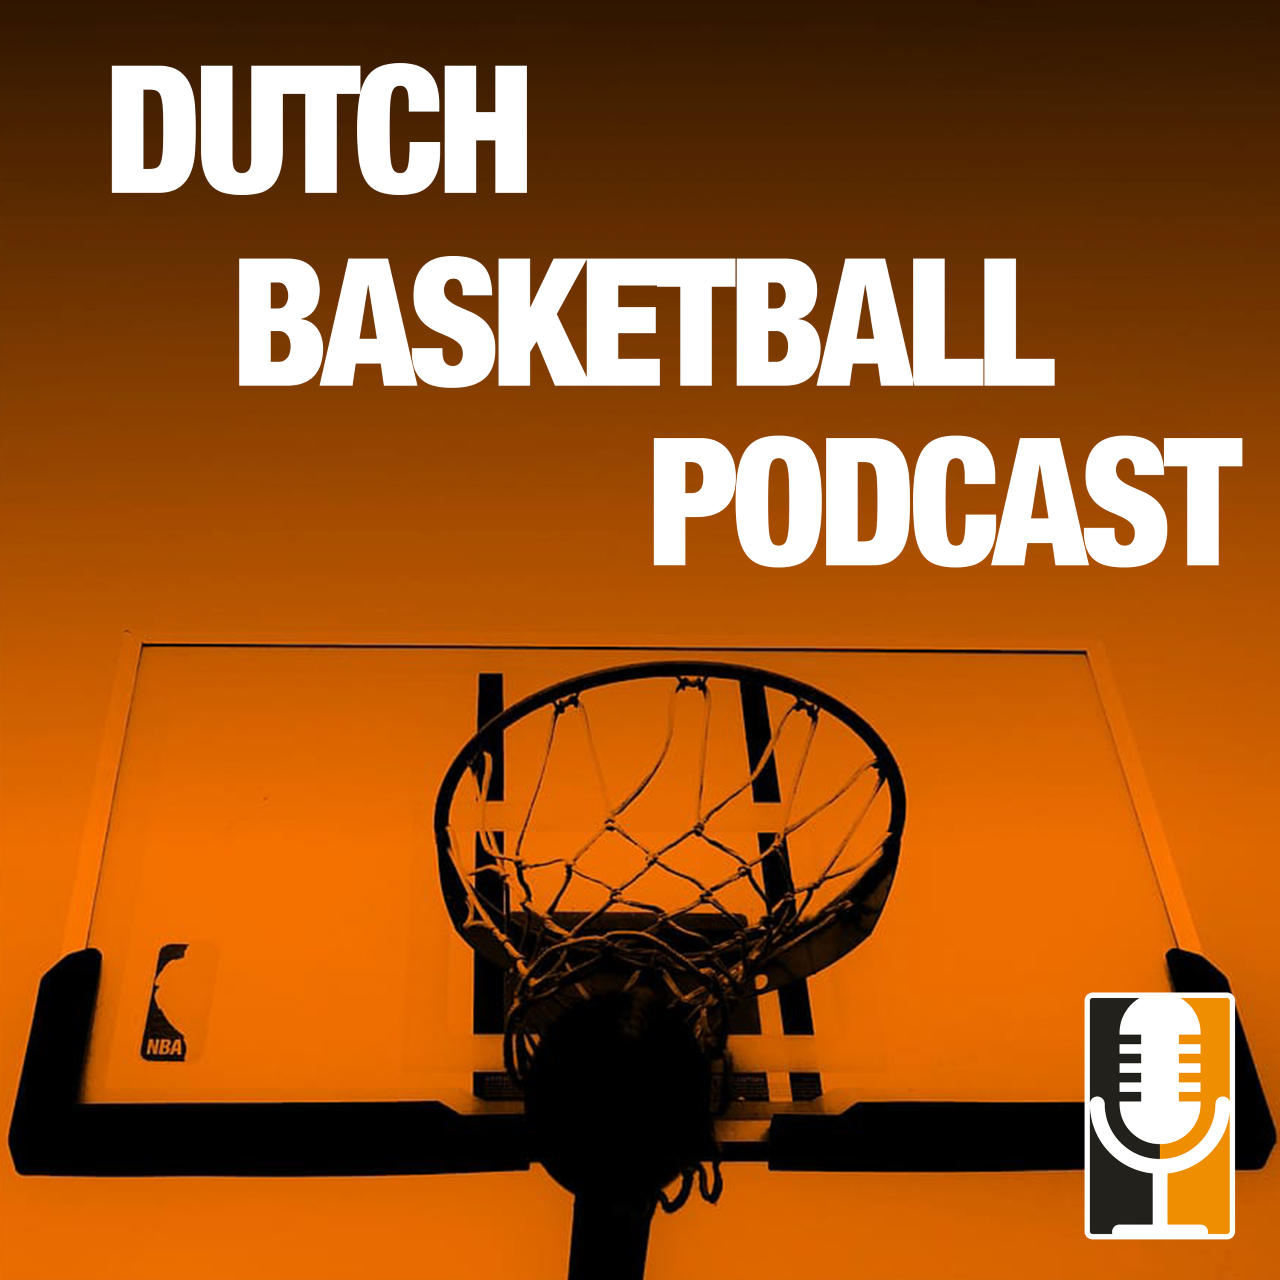 Dutch Basketball Podcast.png